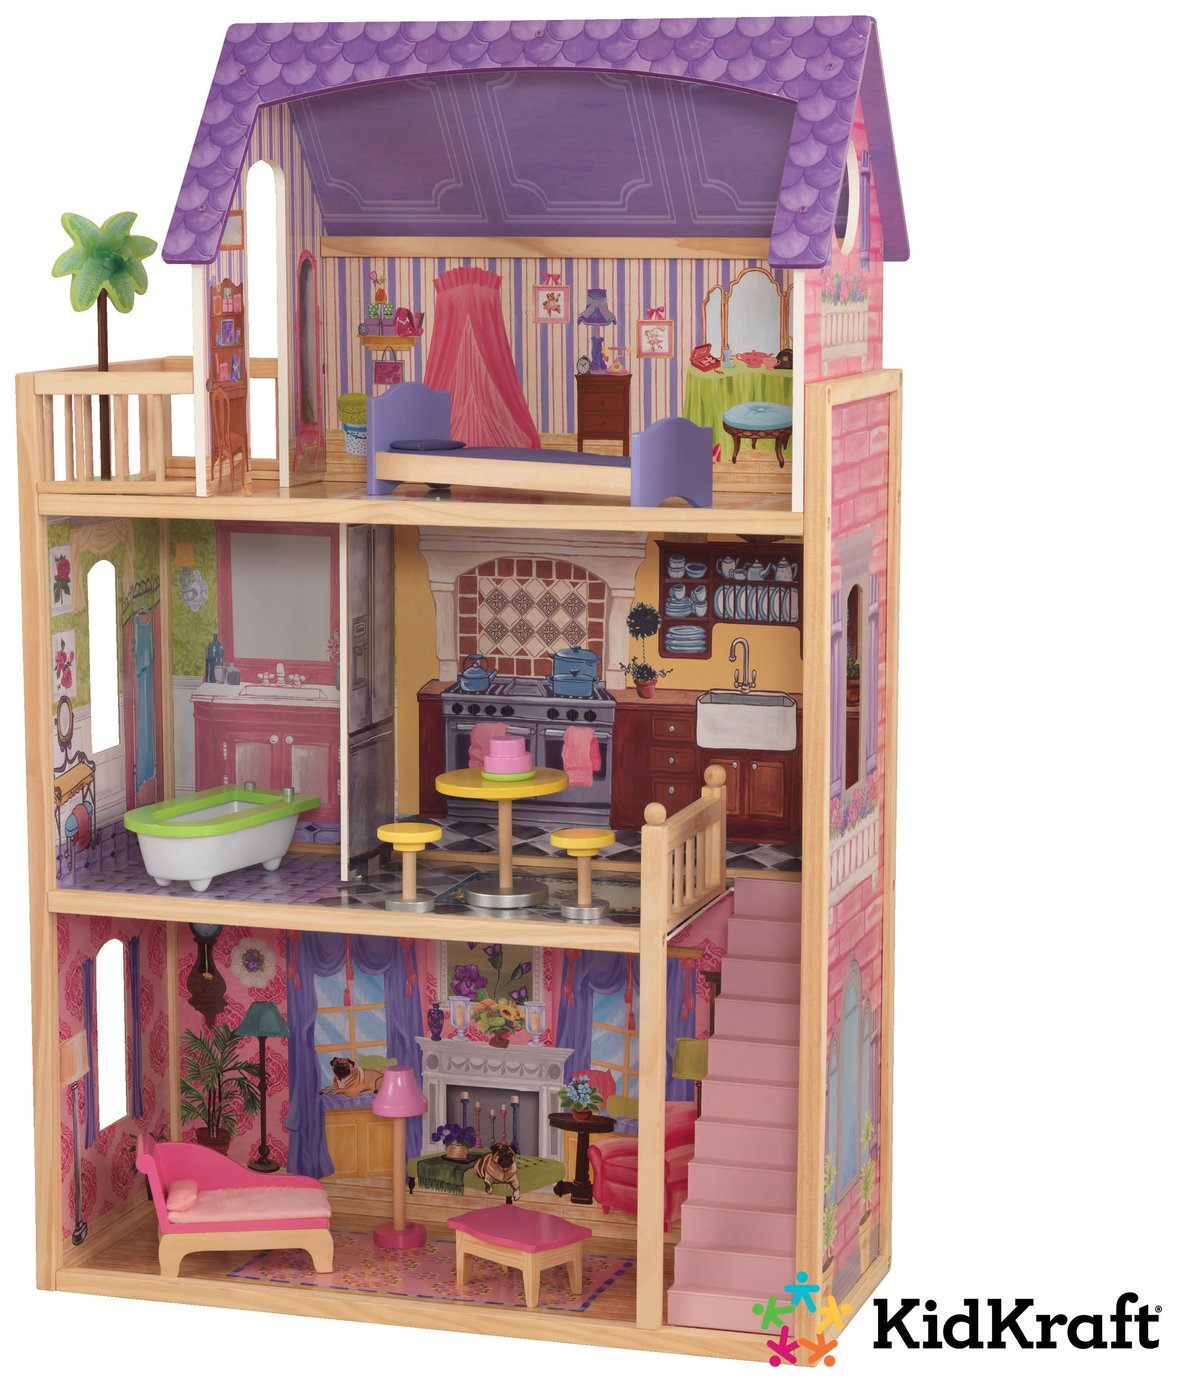 kidkraft kayla wooden dolls house